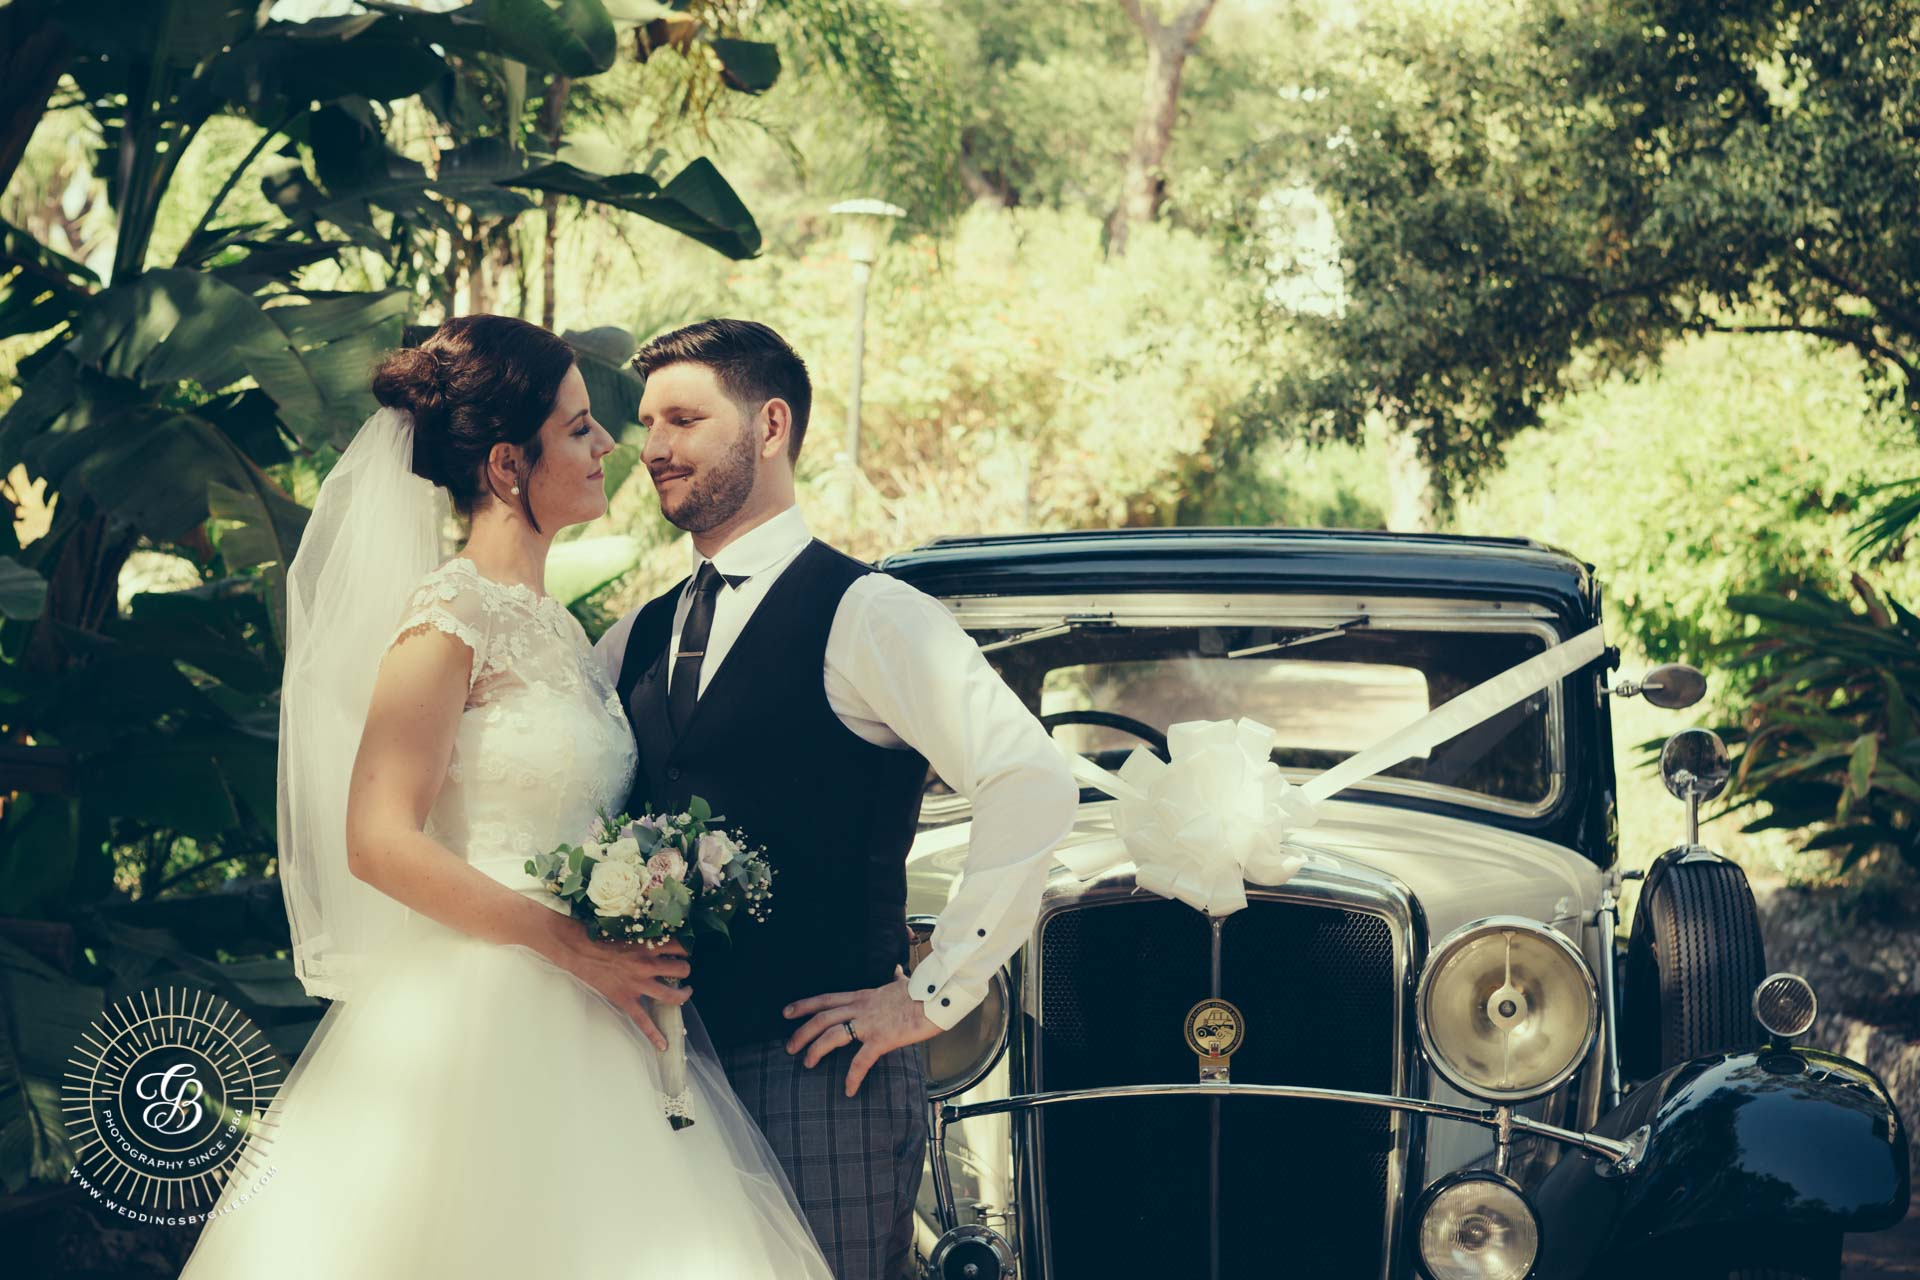 newlyweds and vintage wedding car